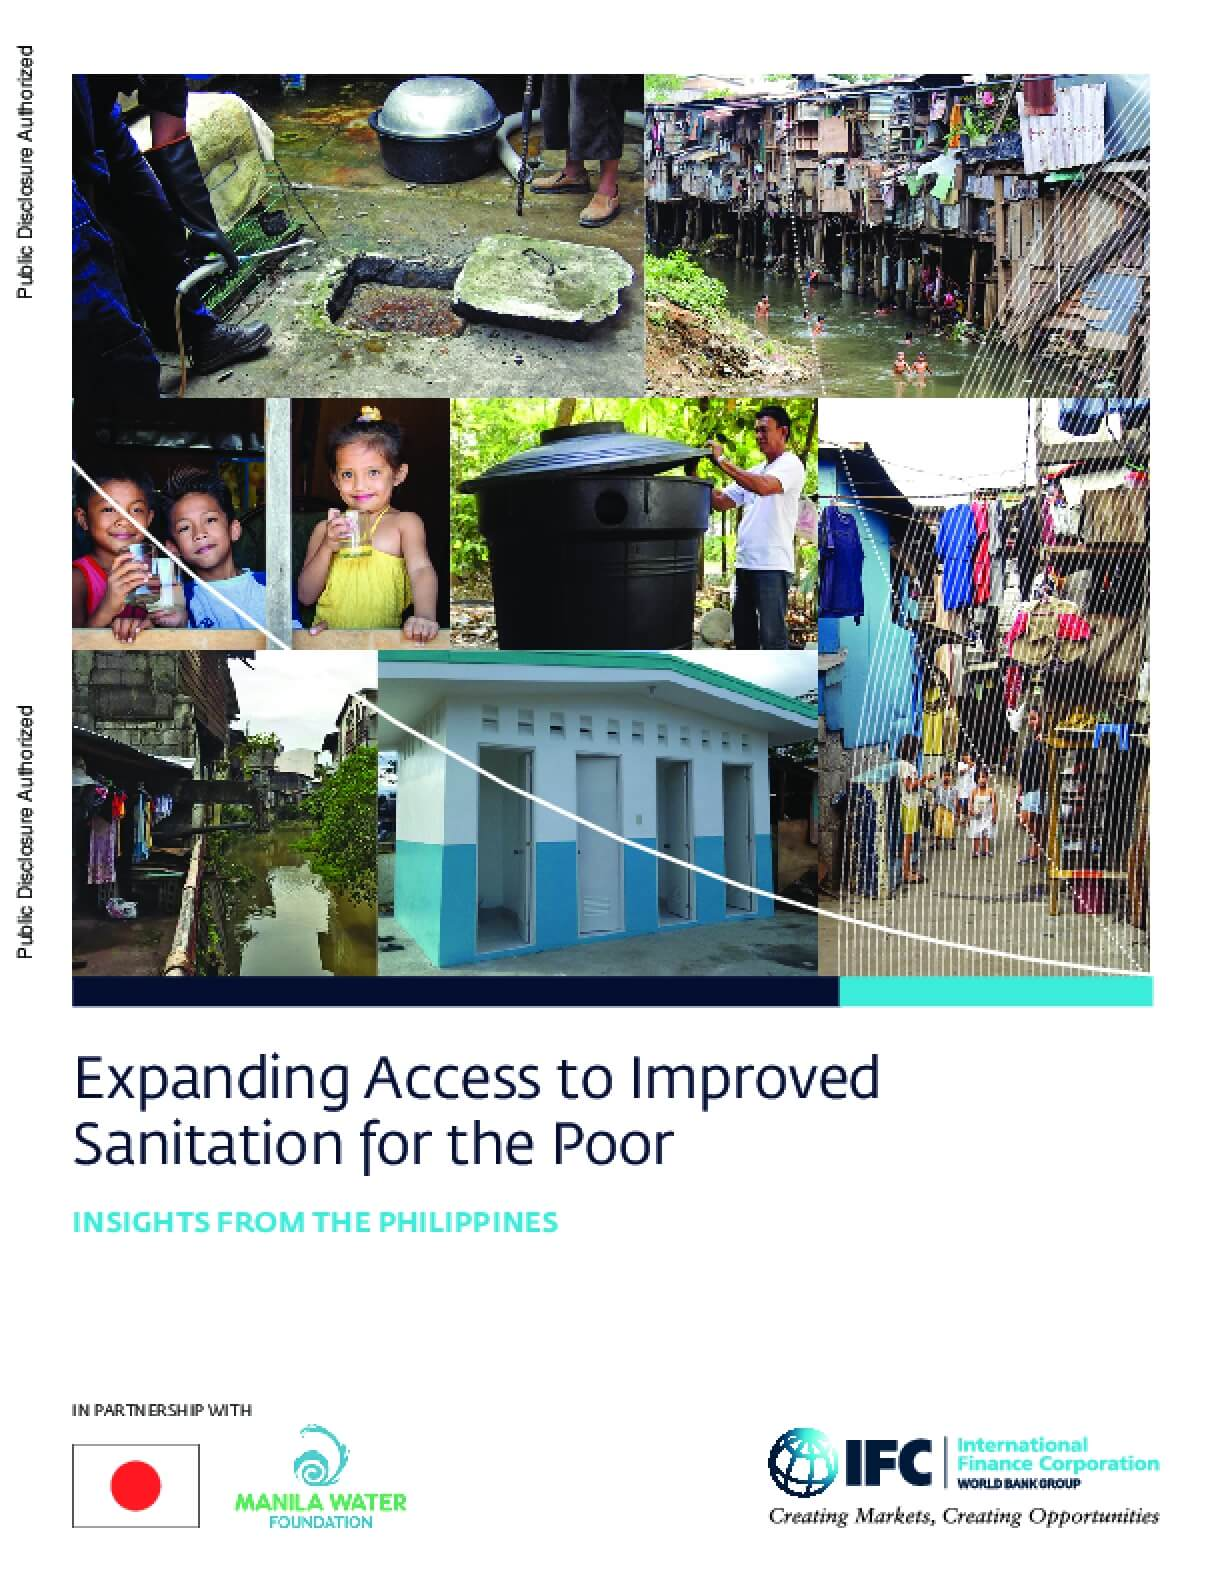 Expanding Access to Improved Sanitation for the Poor : Insights from the Philippines